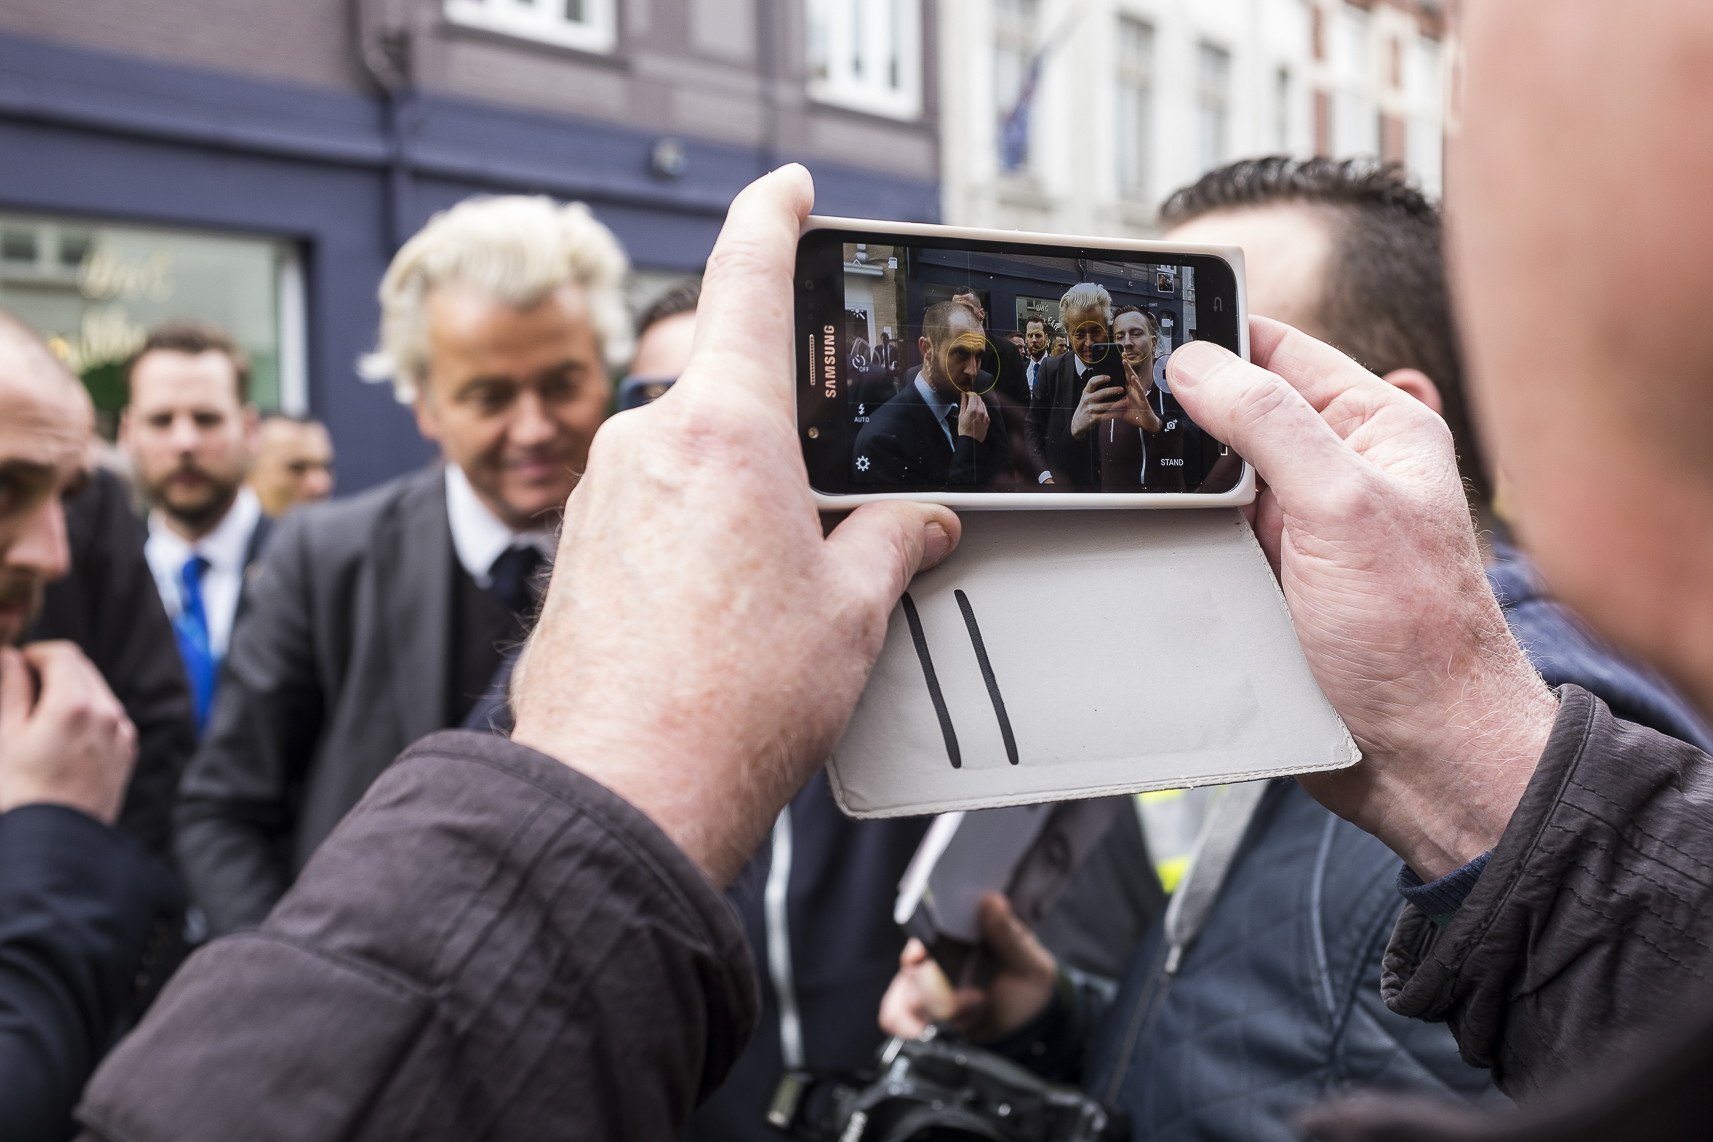 Firebrand anti-Islam lawmaker Geert Wilders, poses for a photo with supporters during a campaign stop in Heerlen, Netherlands, on March 11, 2017.